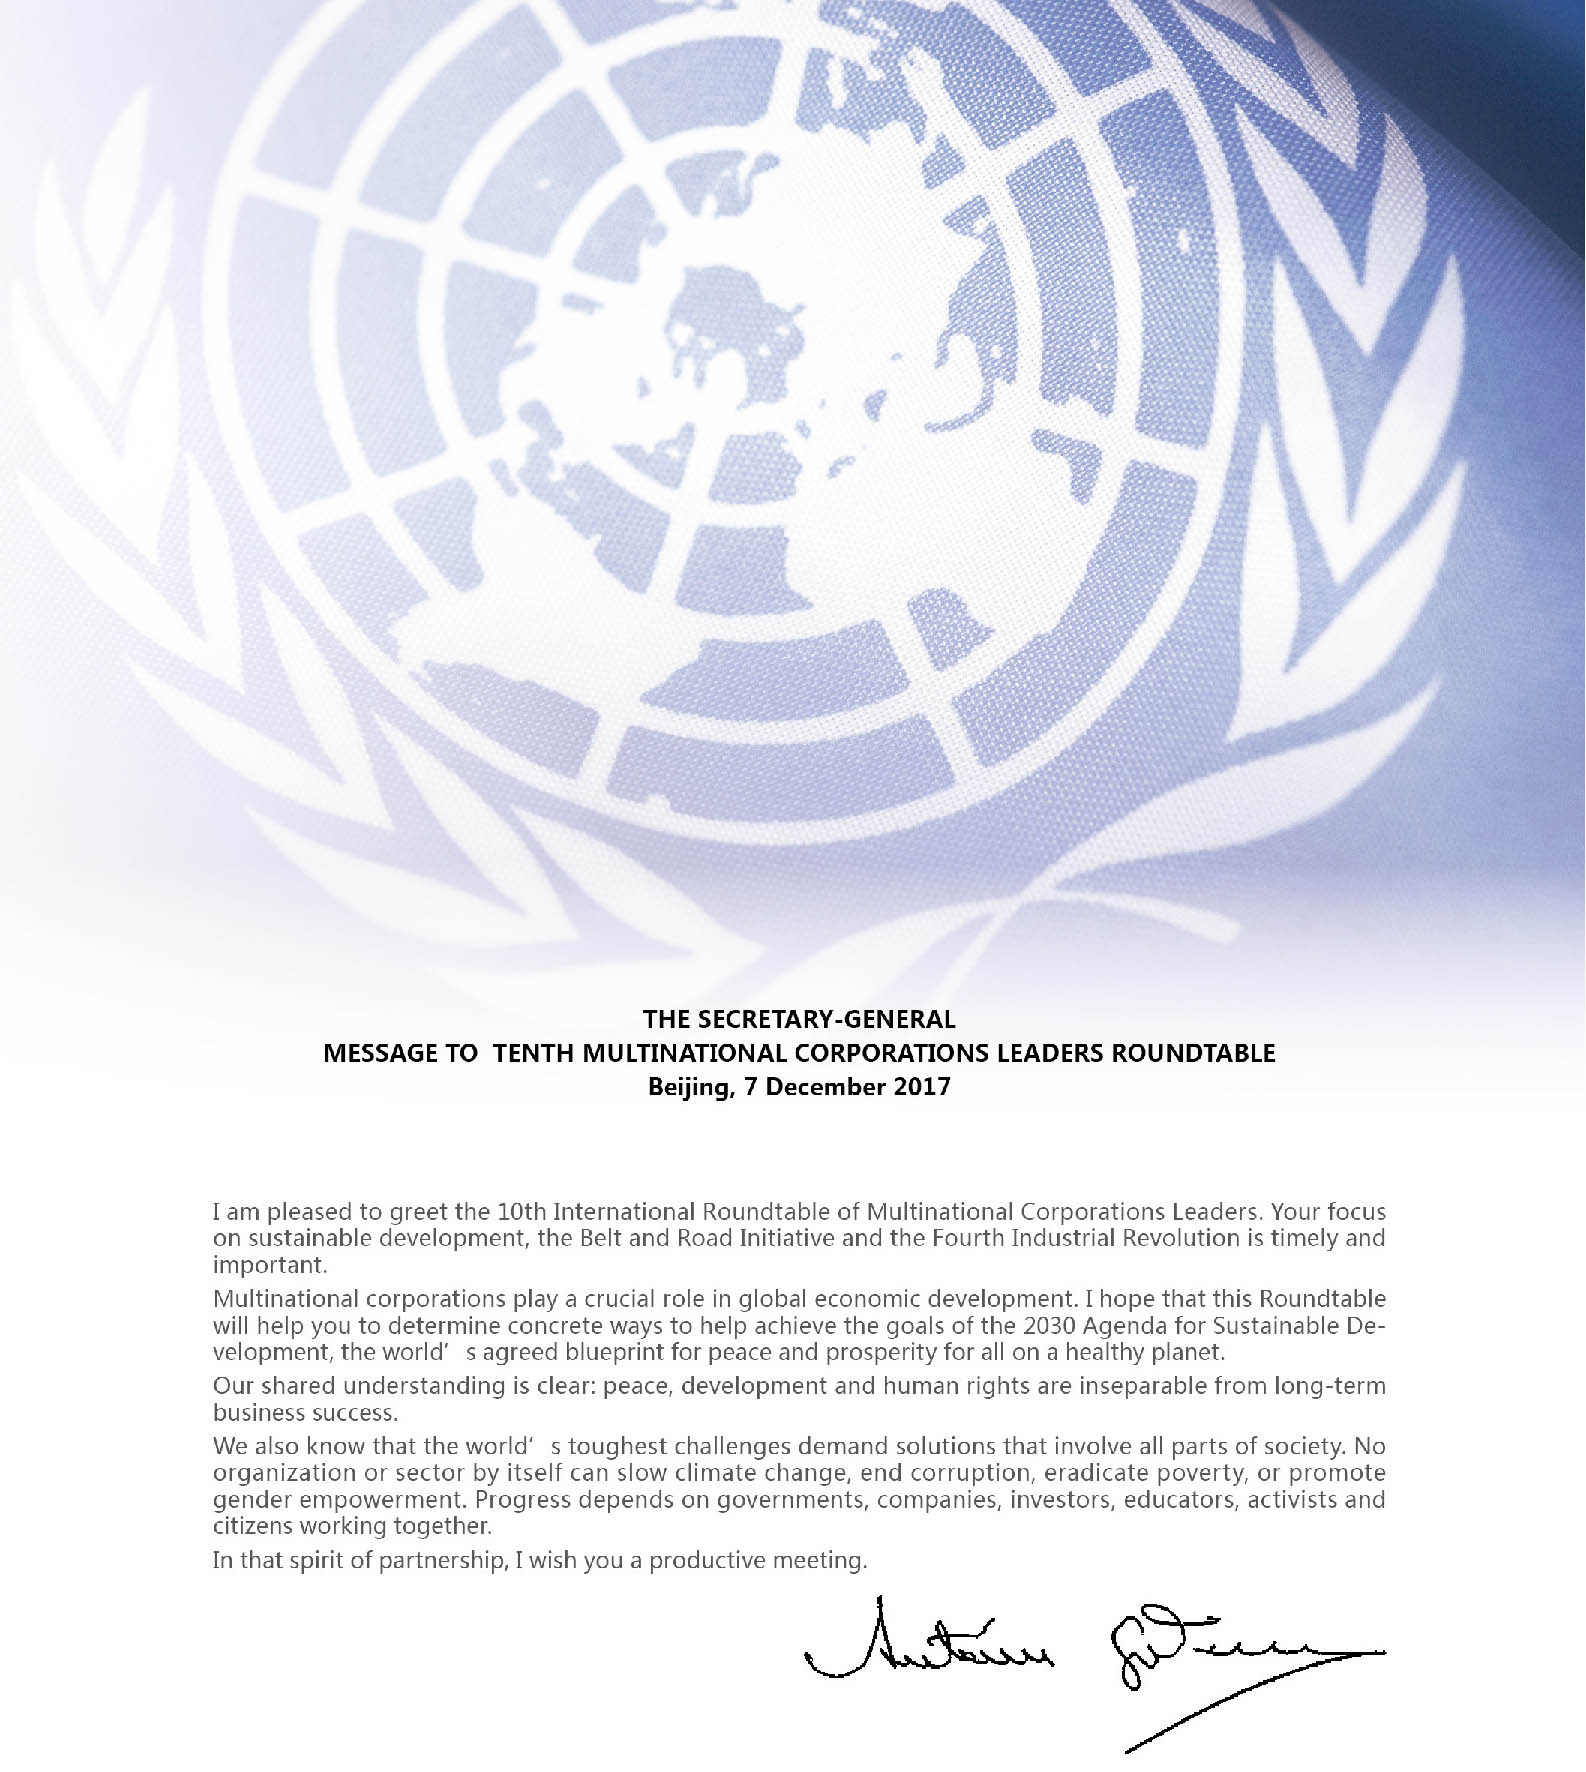 UN Secretary-General Mr. António Guterres sends congratulatory messages to International Roundtable of Multinational Corporations Leaders every year since 2017